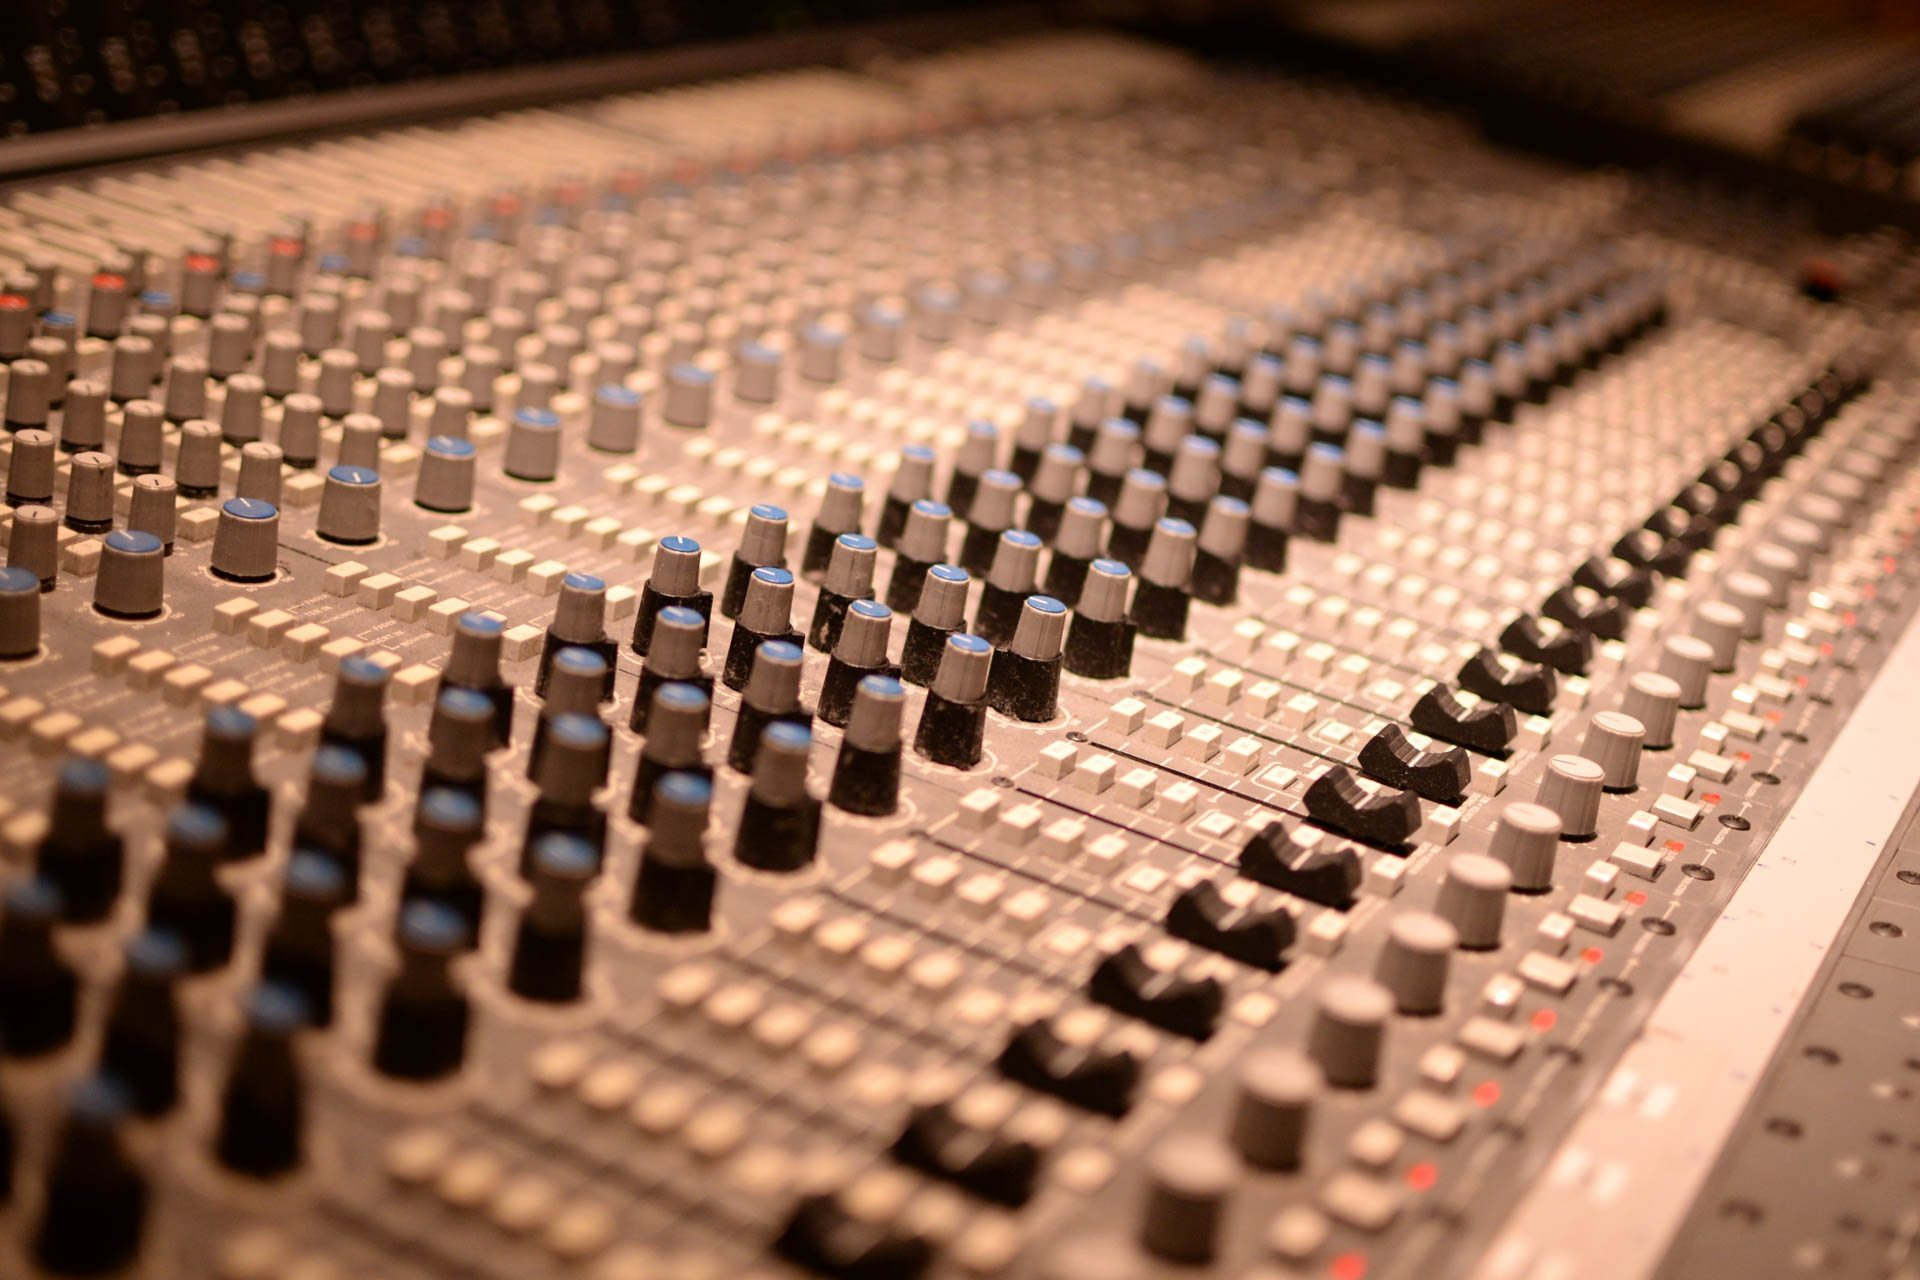 Livemix Blog - Analog Mixers Vs. Digital Mixers